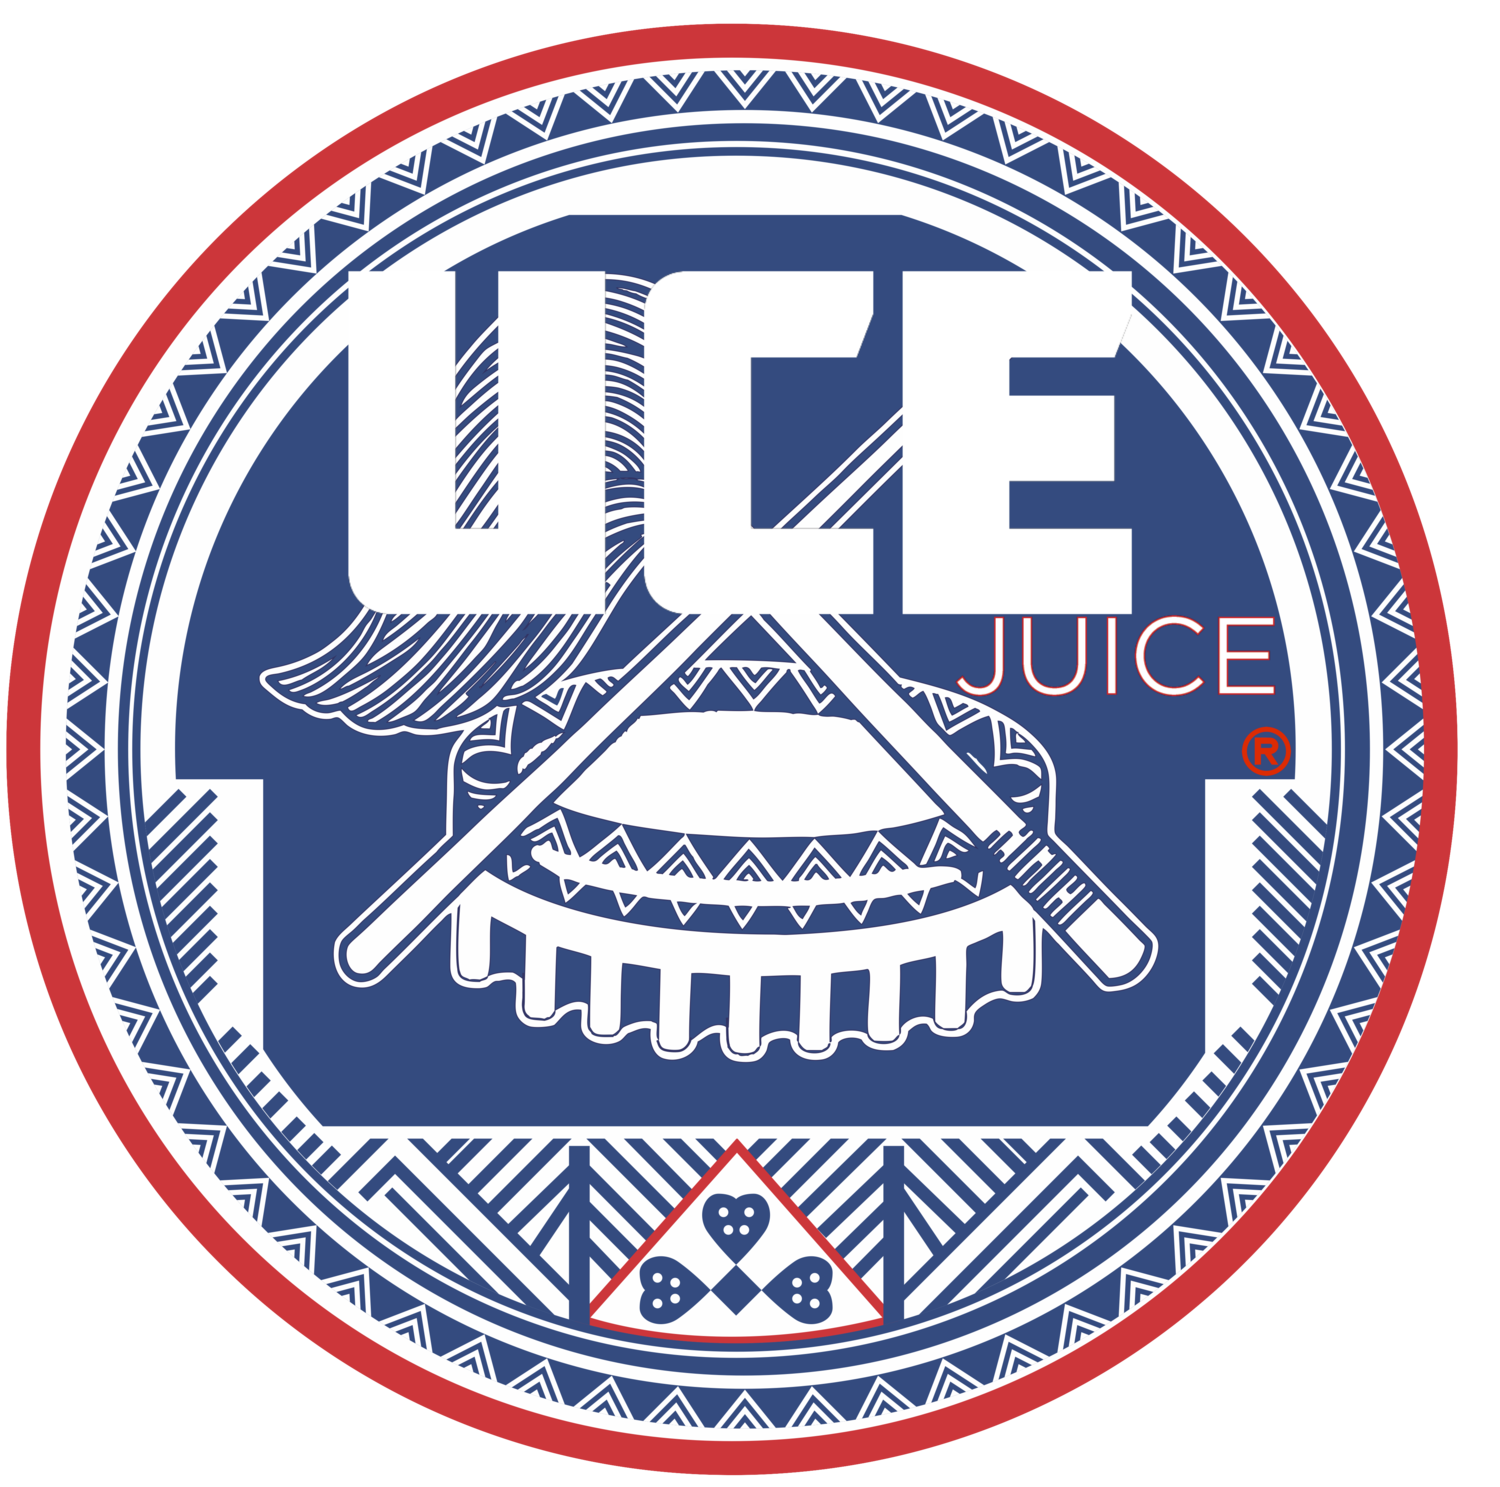 UCEJUICE.com| UCE JUICE® Natural Polynesian Energy| Free Shipping on order over $70